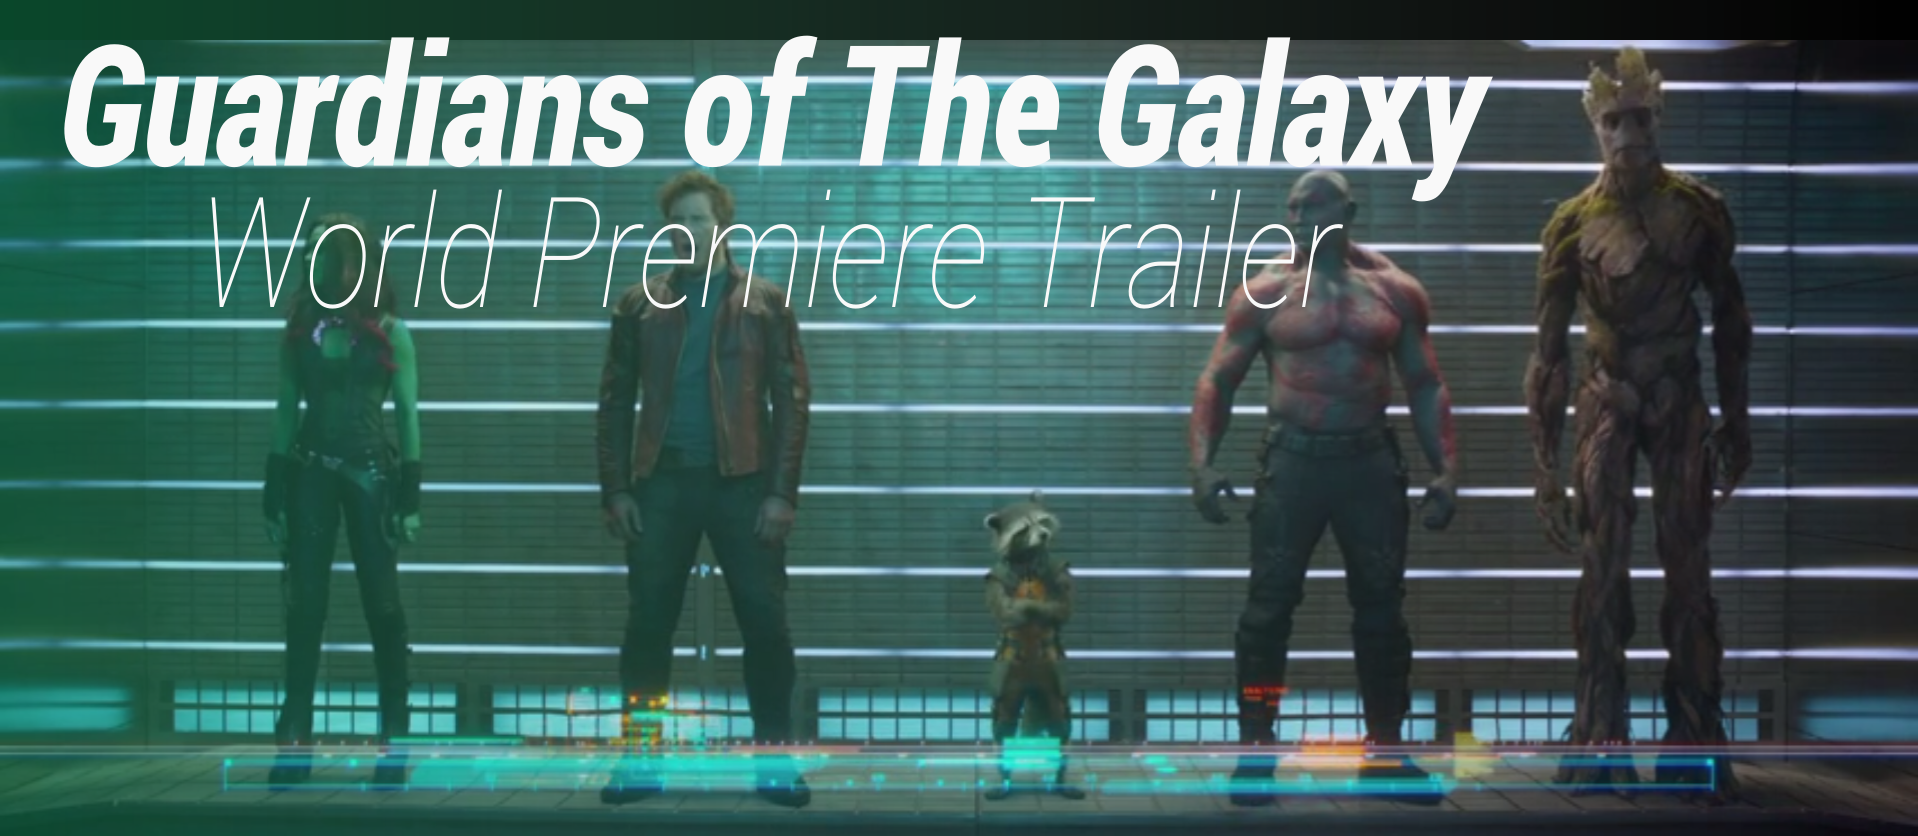 GuardiansofTheGalaxy_Header